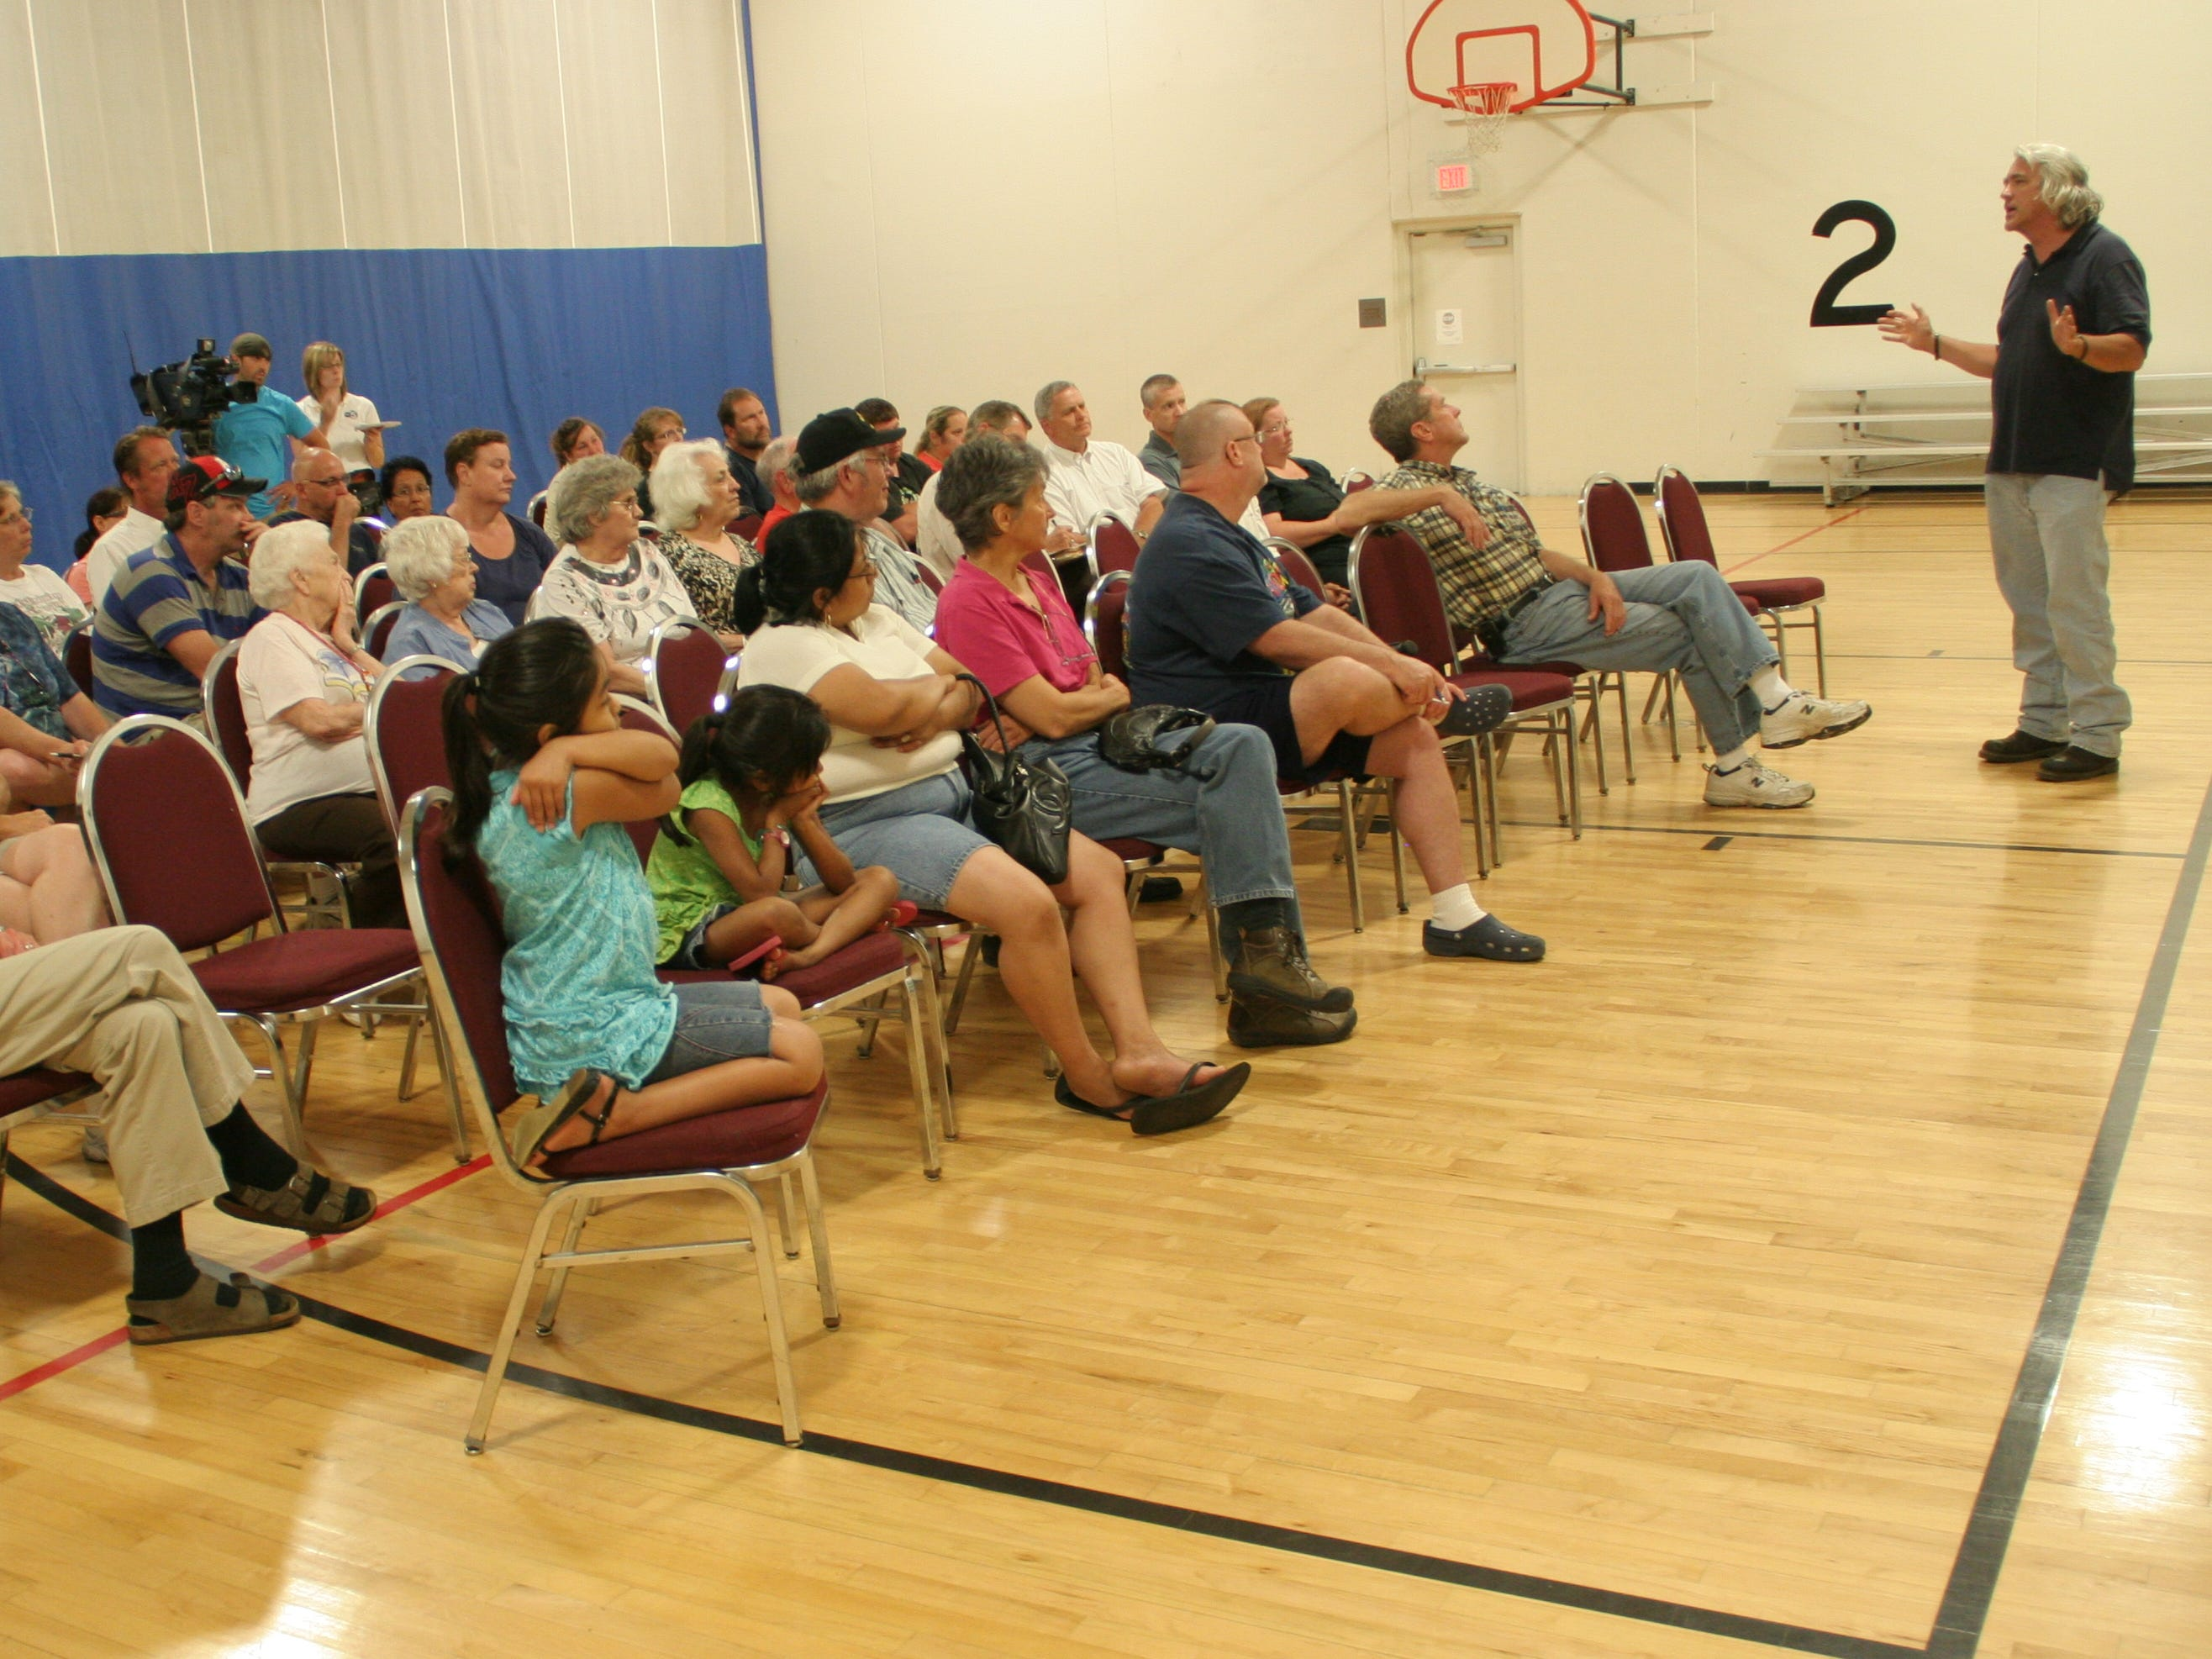 Bill Stowe tells a crowd of about 60 southside residents why their basements flooded with sewer water in 2010.